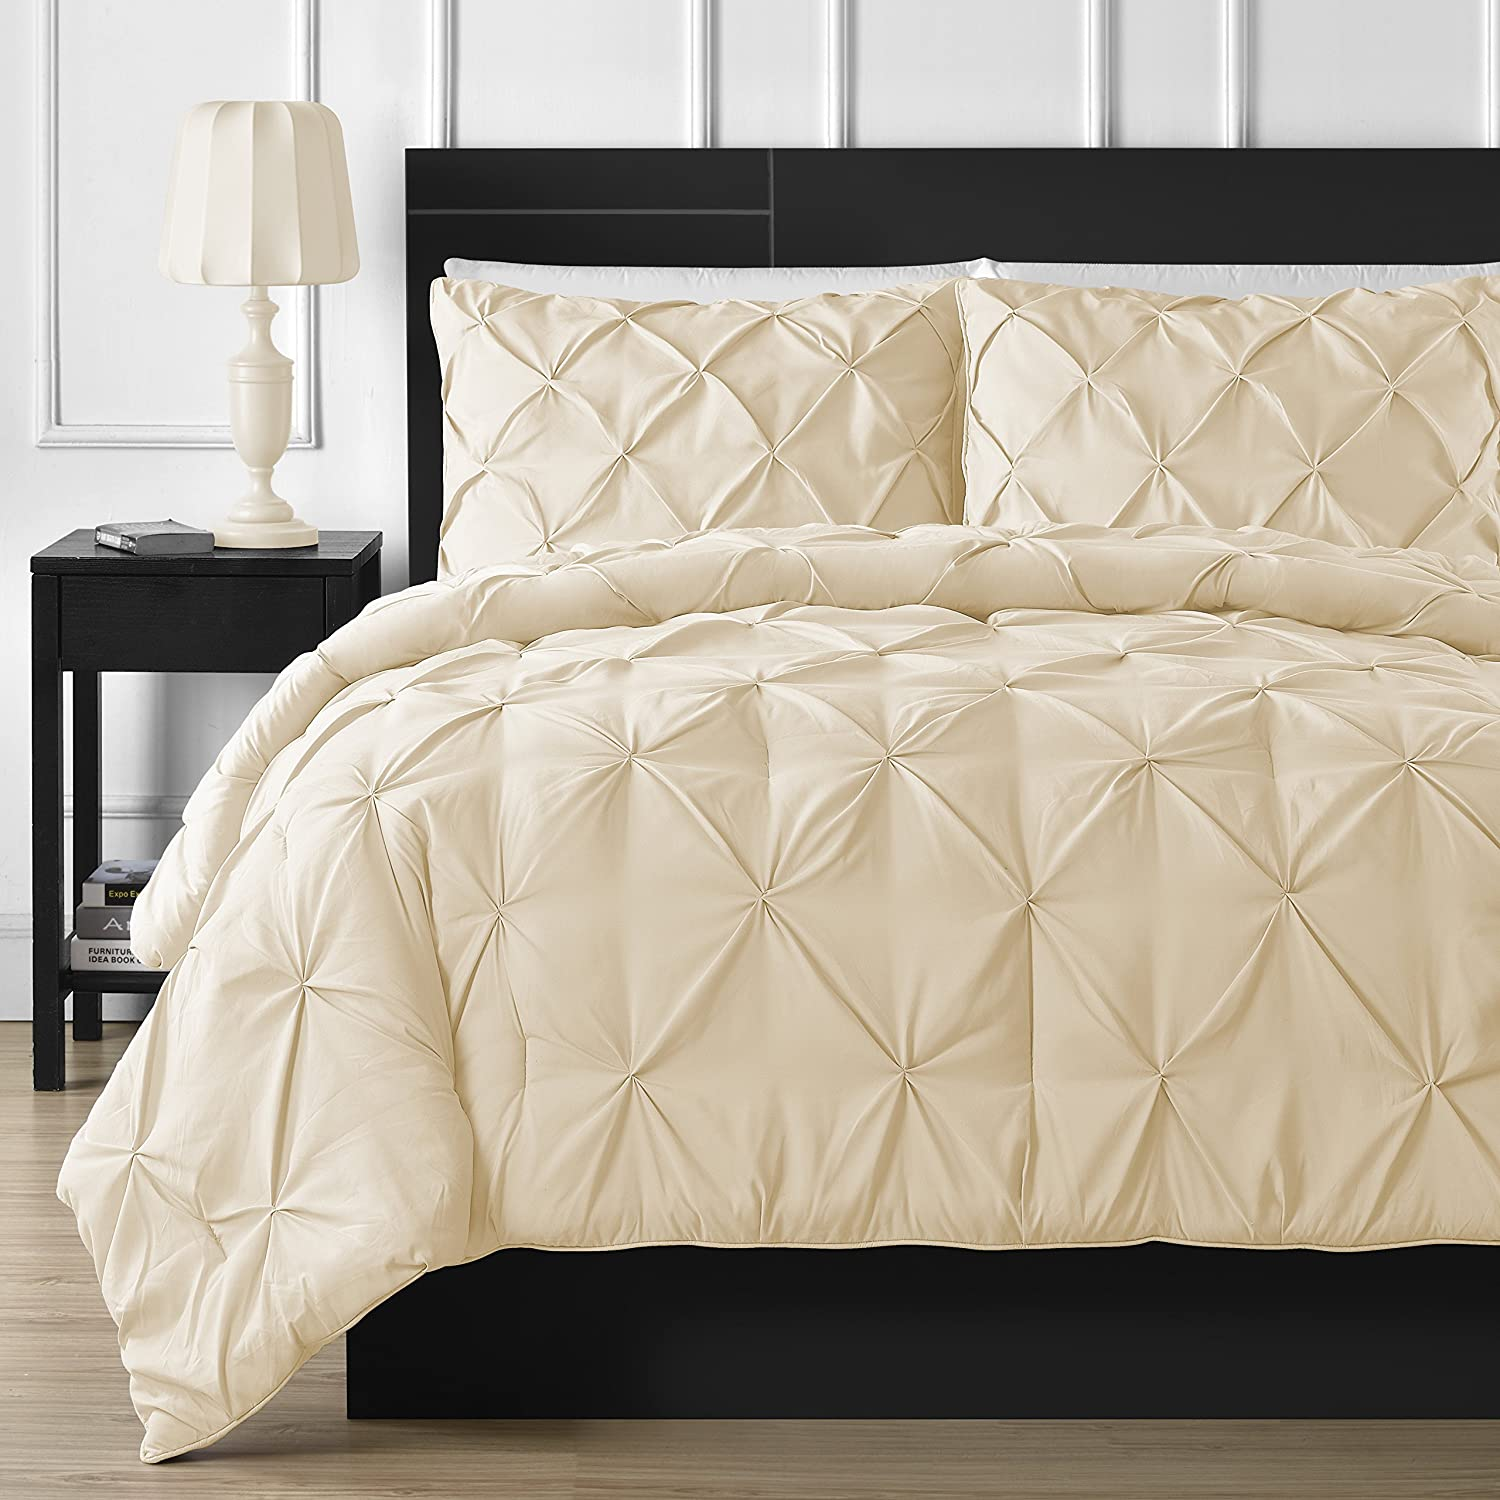 3-piece Pinch Pleat Comforter Set Full, Vanilla